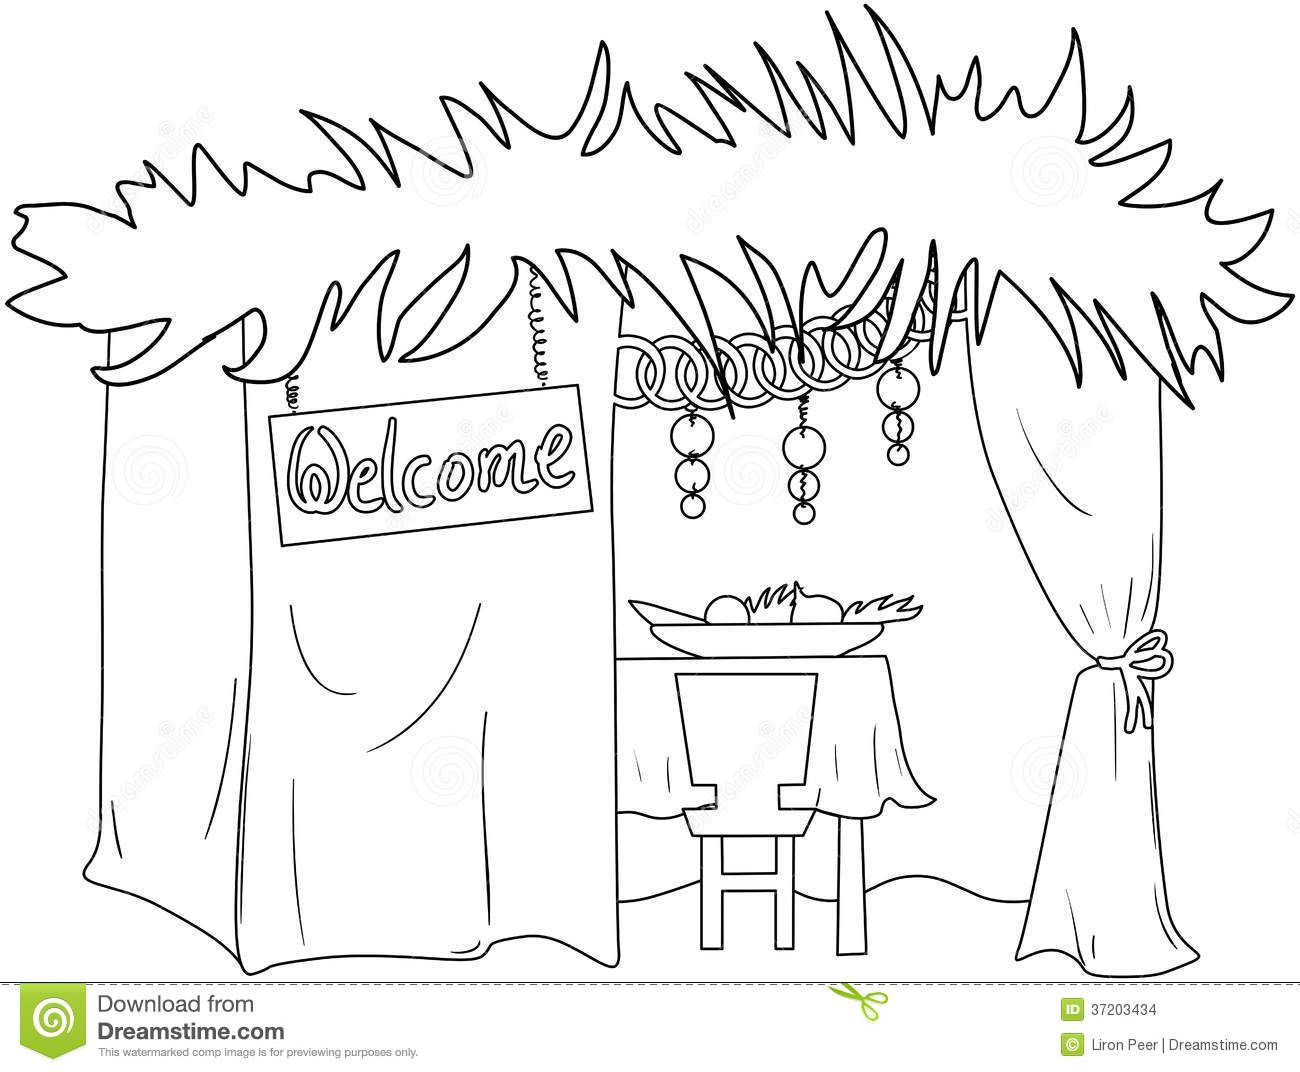 Sukkot Coloring Page Coloring Pages Sukkot Detailed Coloring Pages